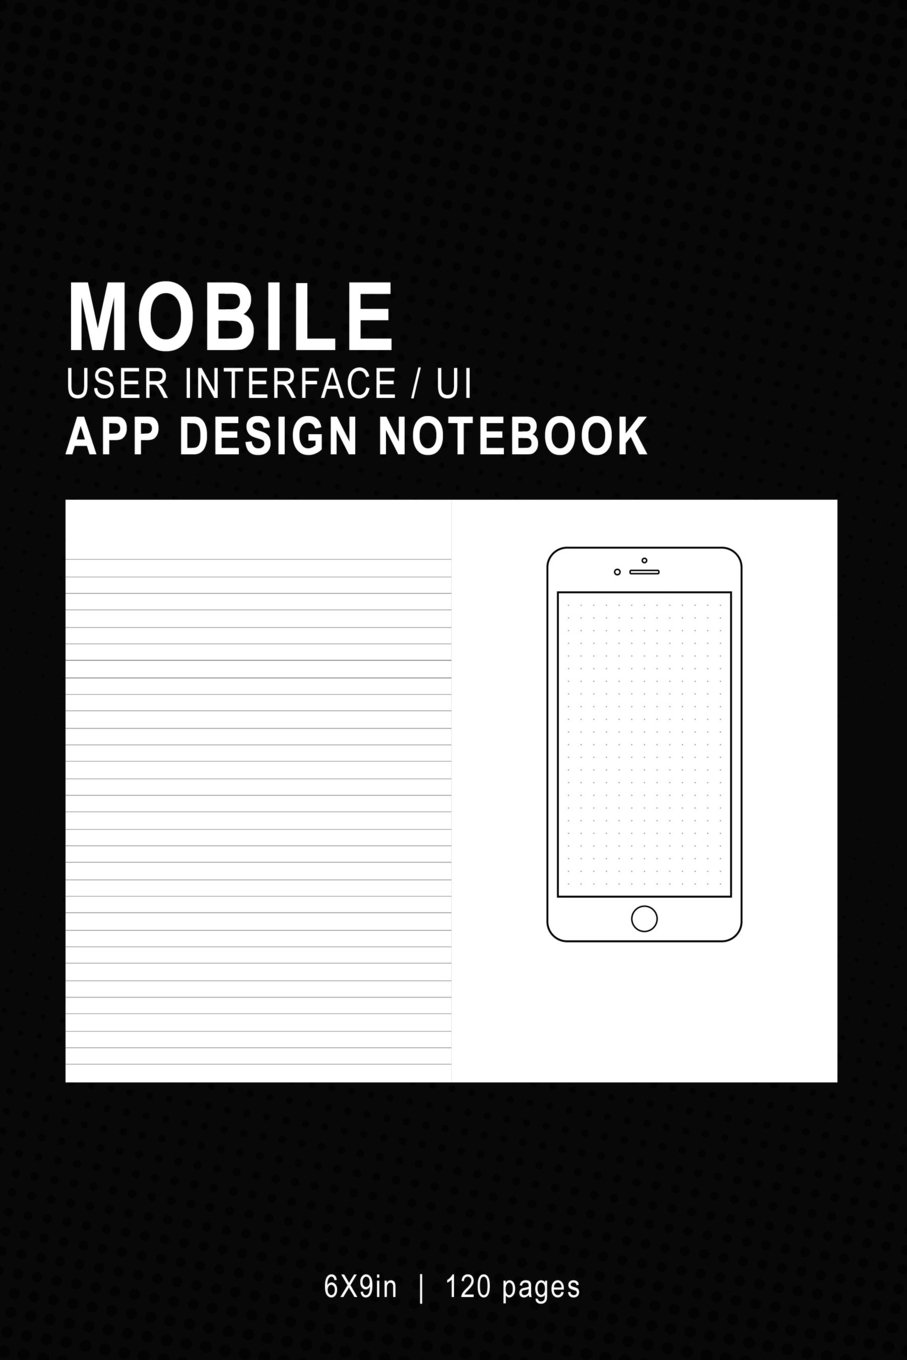 Mobile App Design Template from images-na.ssl-images-amazon.com